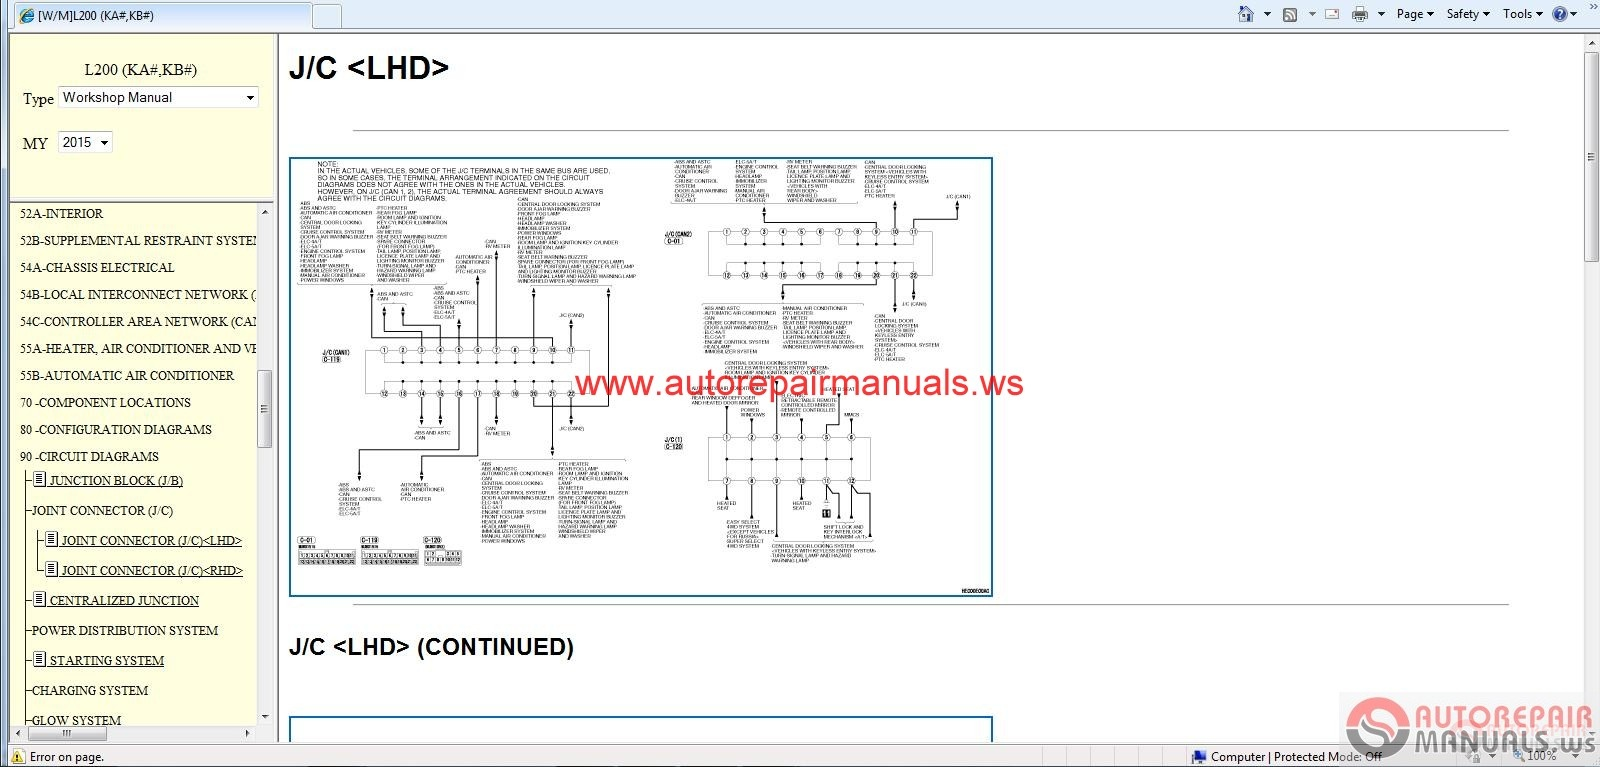 peterbilt 335 wiring harness diagram for engine with 388 Peterbilt Wiring Diagrams on International Dt466 Engine Wiring Diagram as well SK26139 as well Before Oct 15 2001 Peterbilt 387 Truck  plete Wiring Diagram Schematic additionally Great Dane Mower Wiring Diagram moreover Engine.